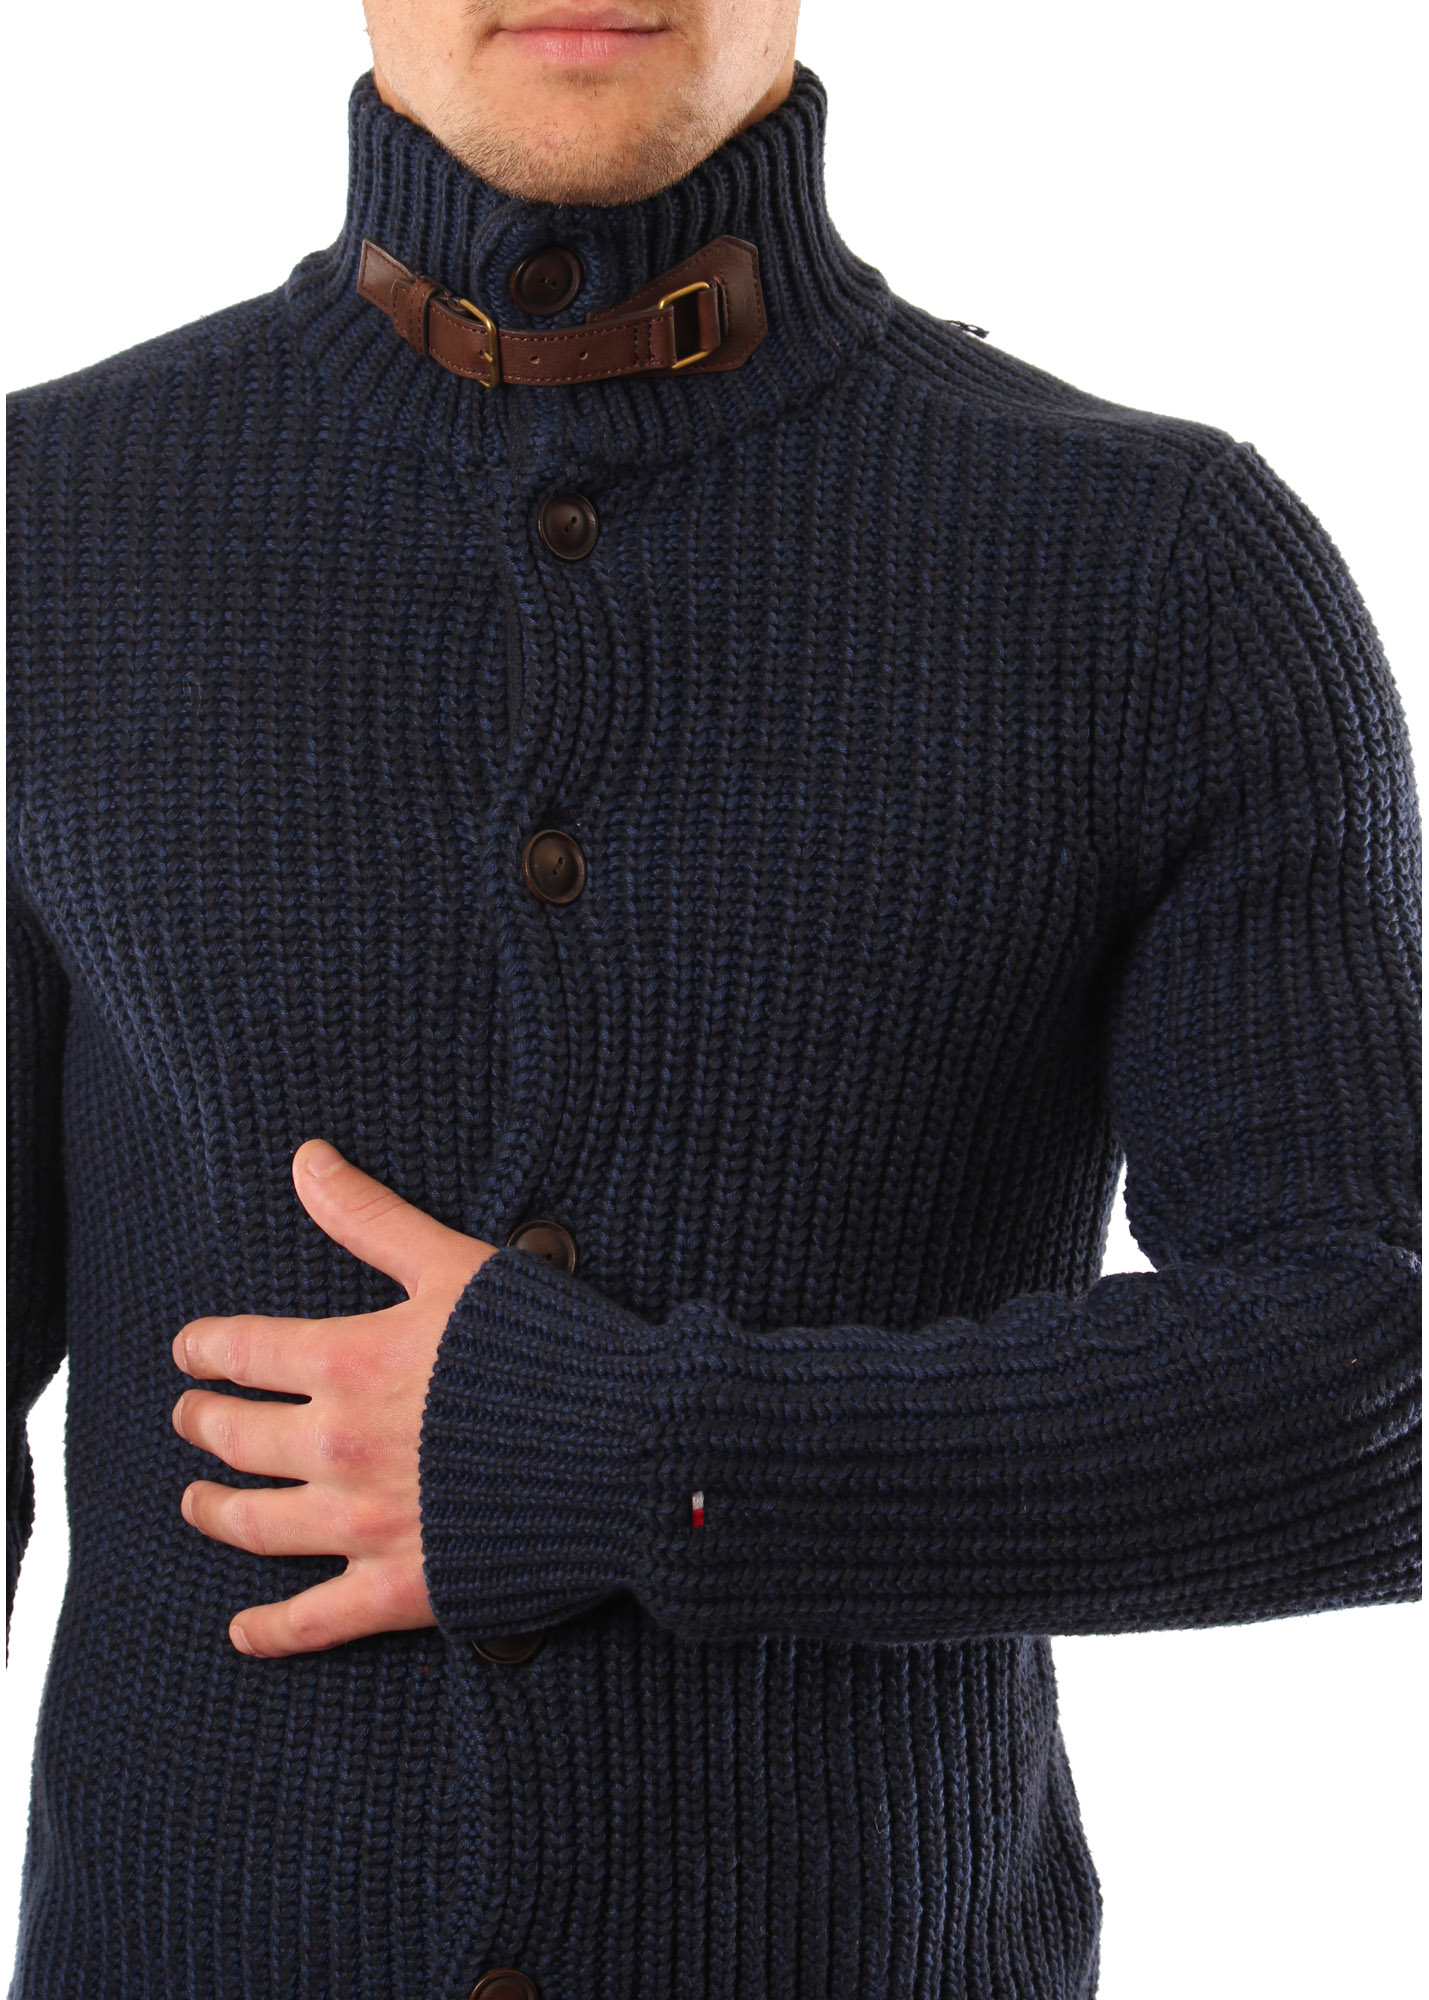 tommy hilfiger sweater clothing store kokos. Black Bedroom Furniture Sets. Home Design Ideas